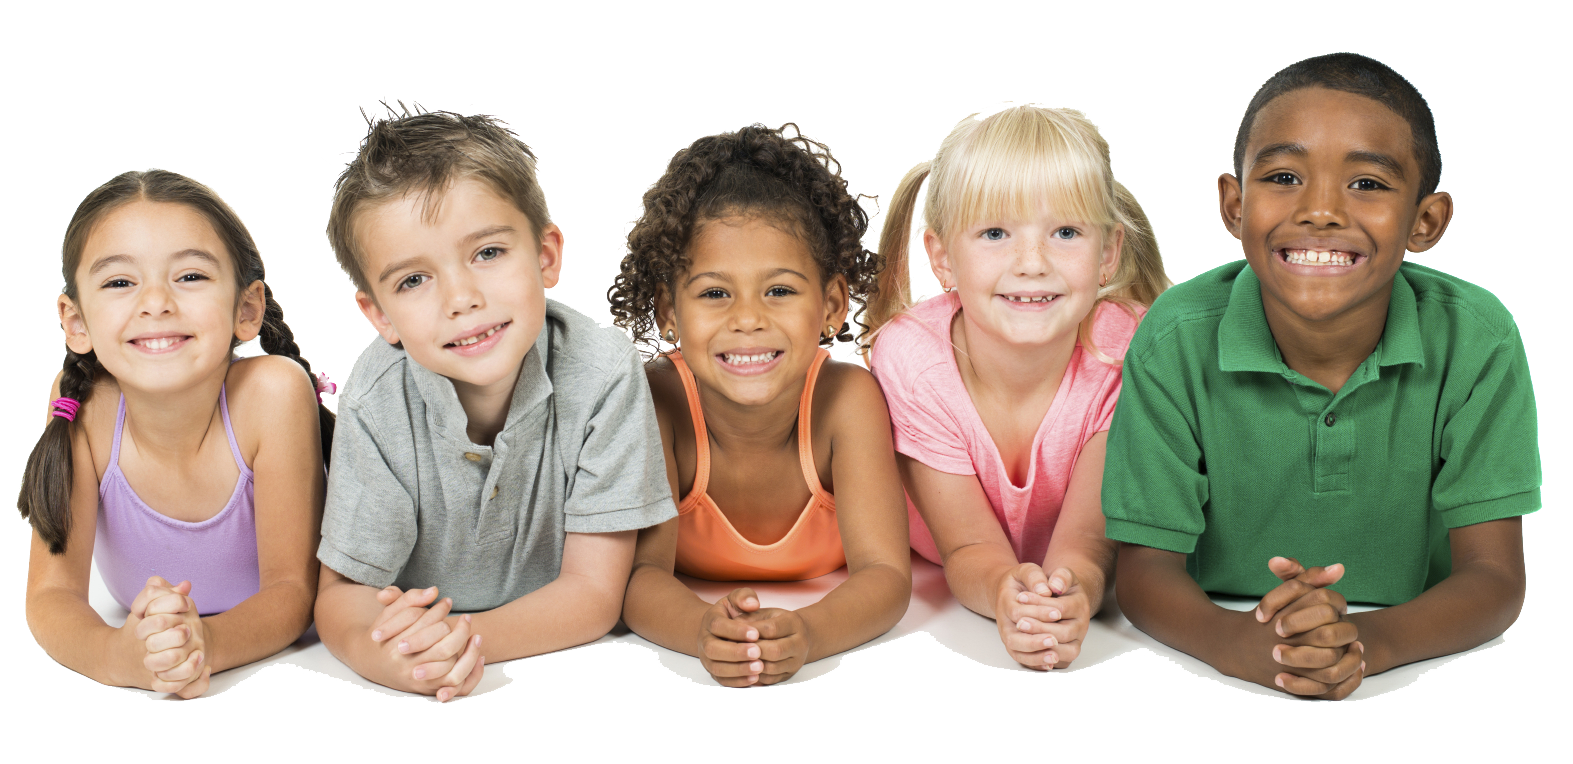 KidCheck Children's Check-In Software for Churches